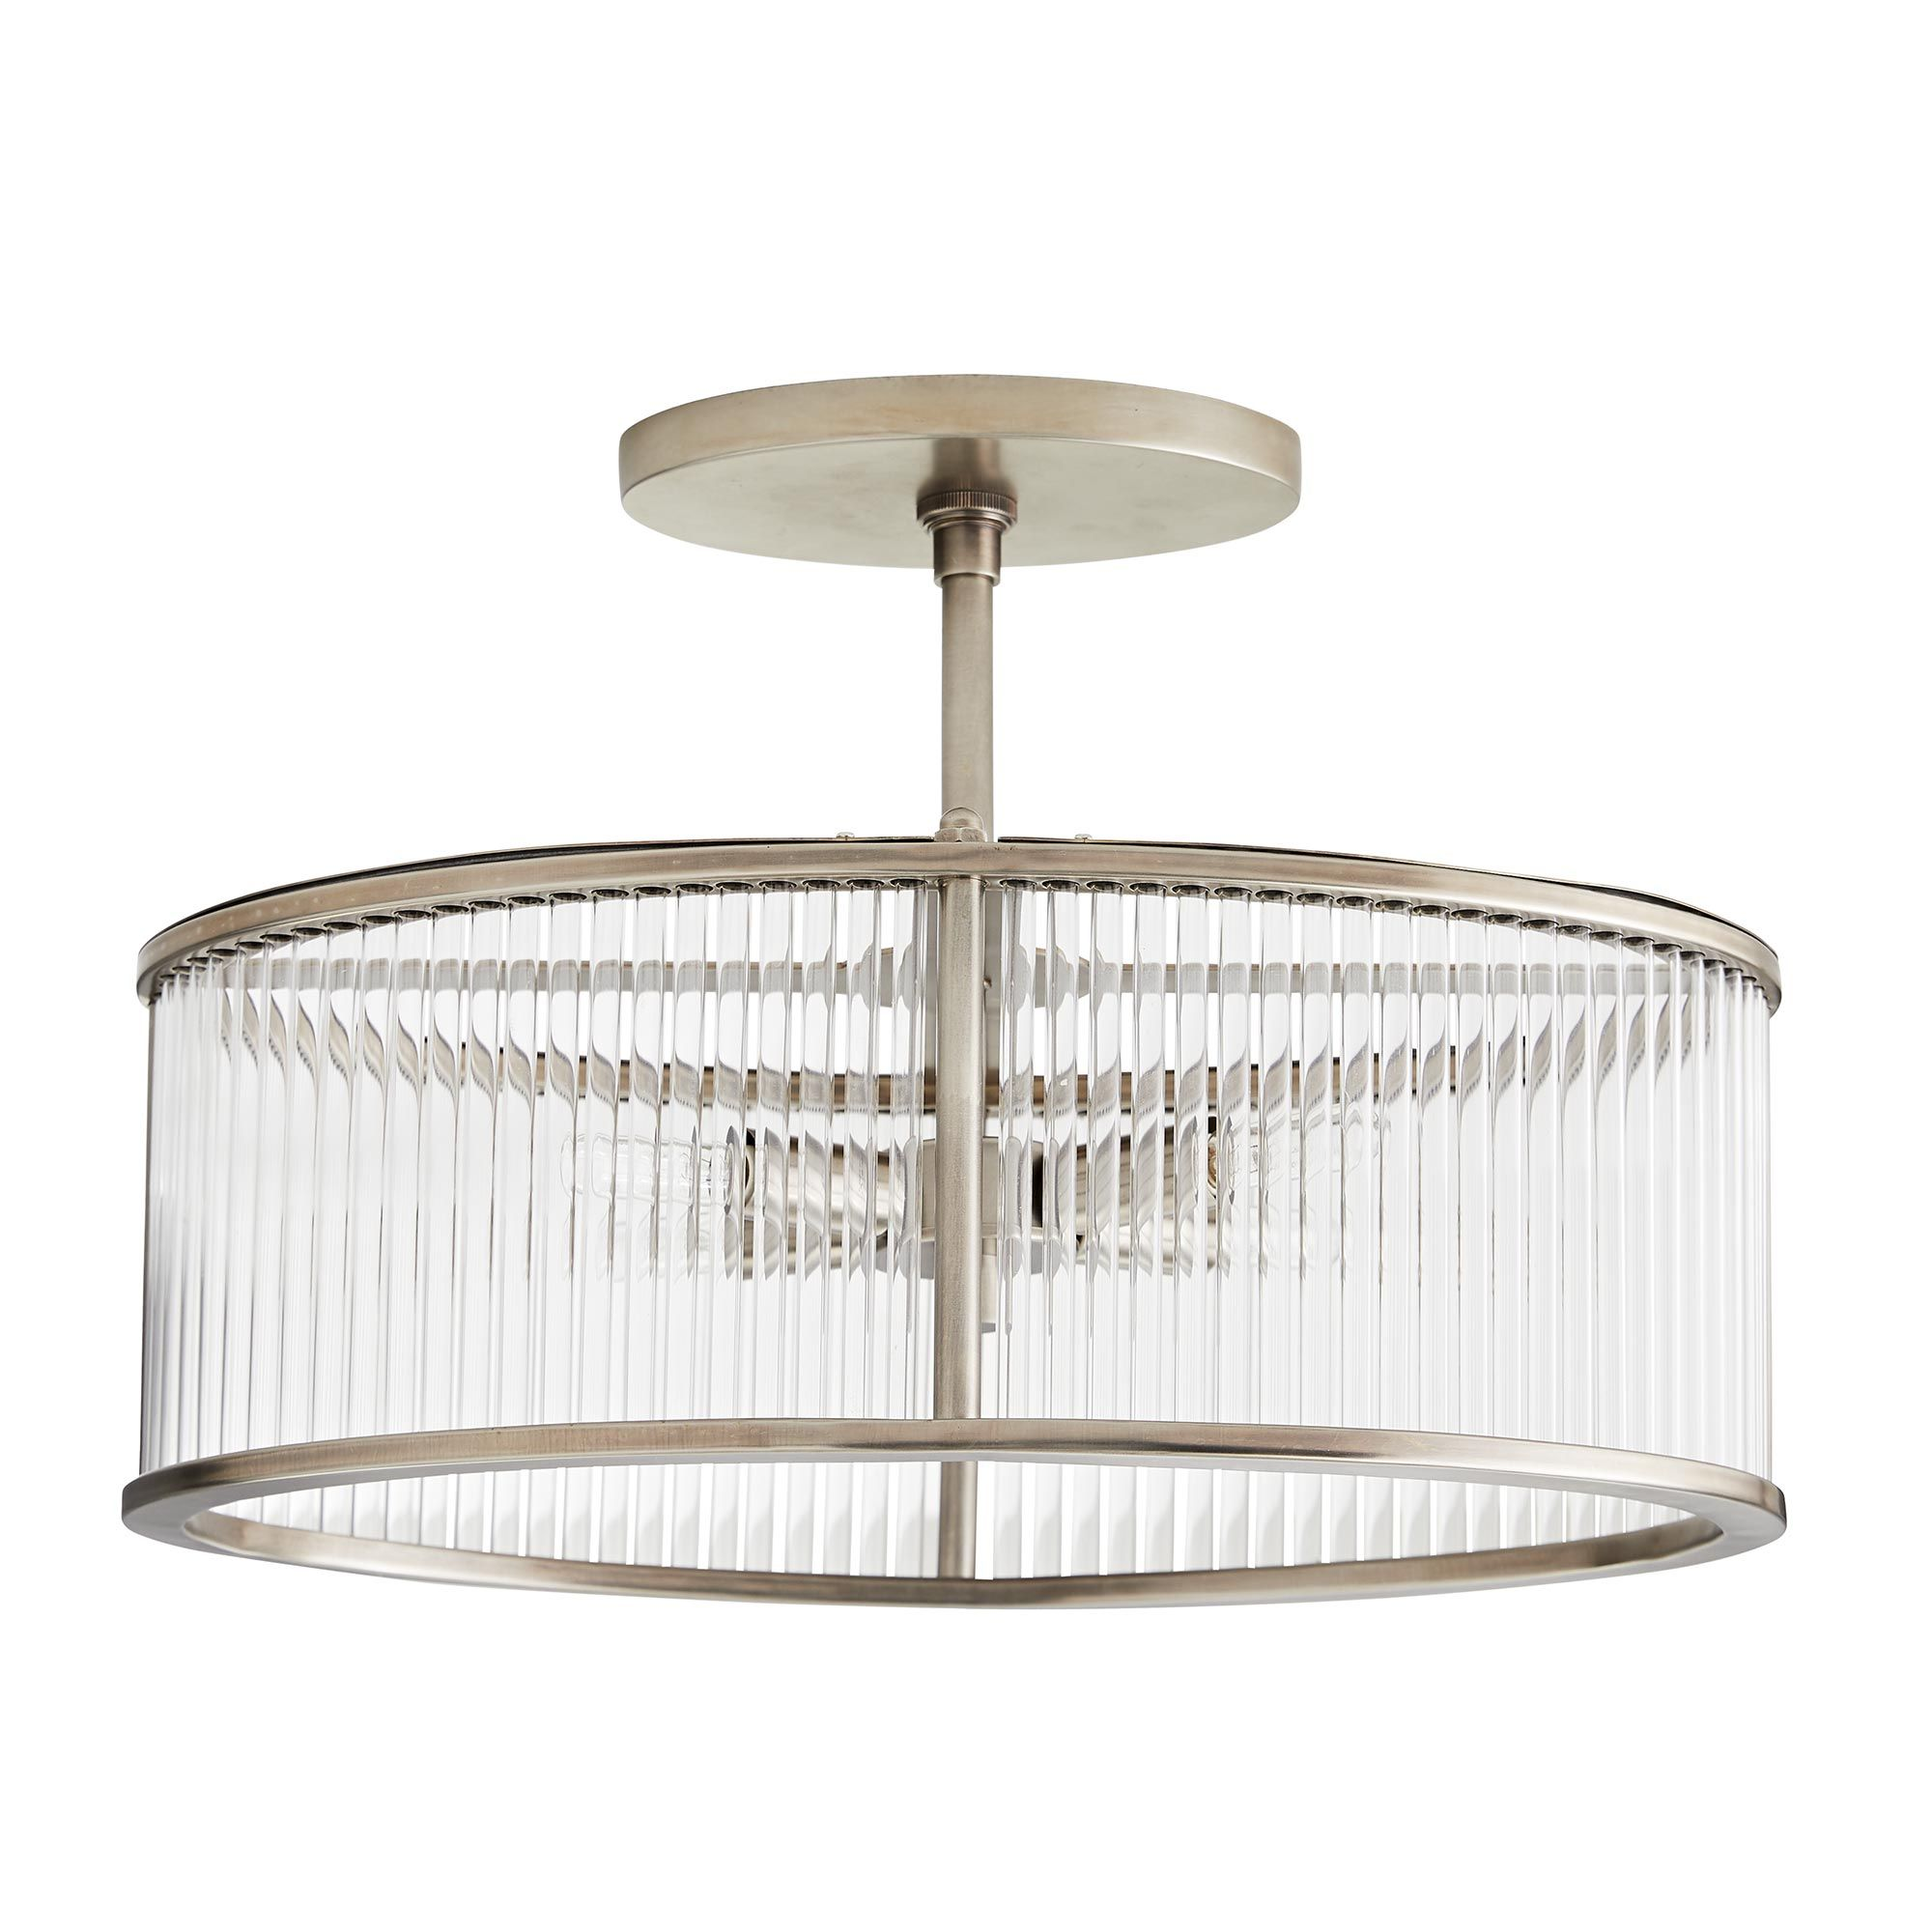 Hera Oval Flush Mount